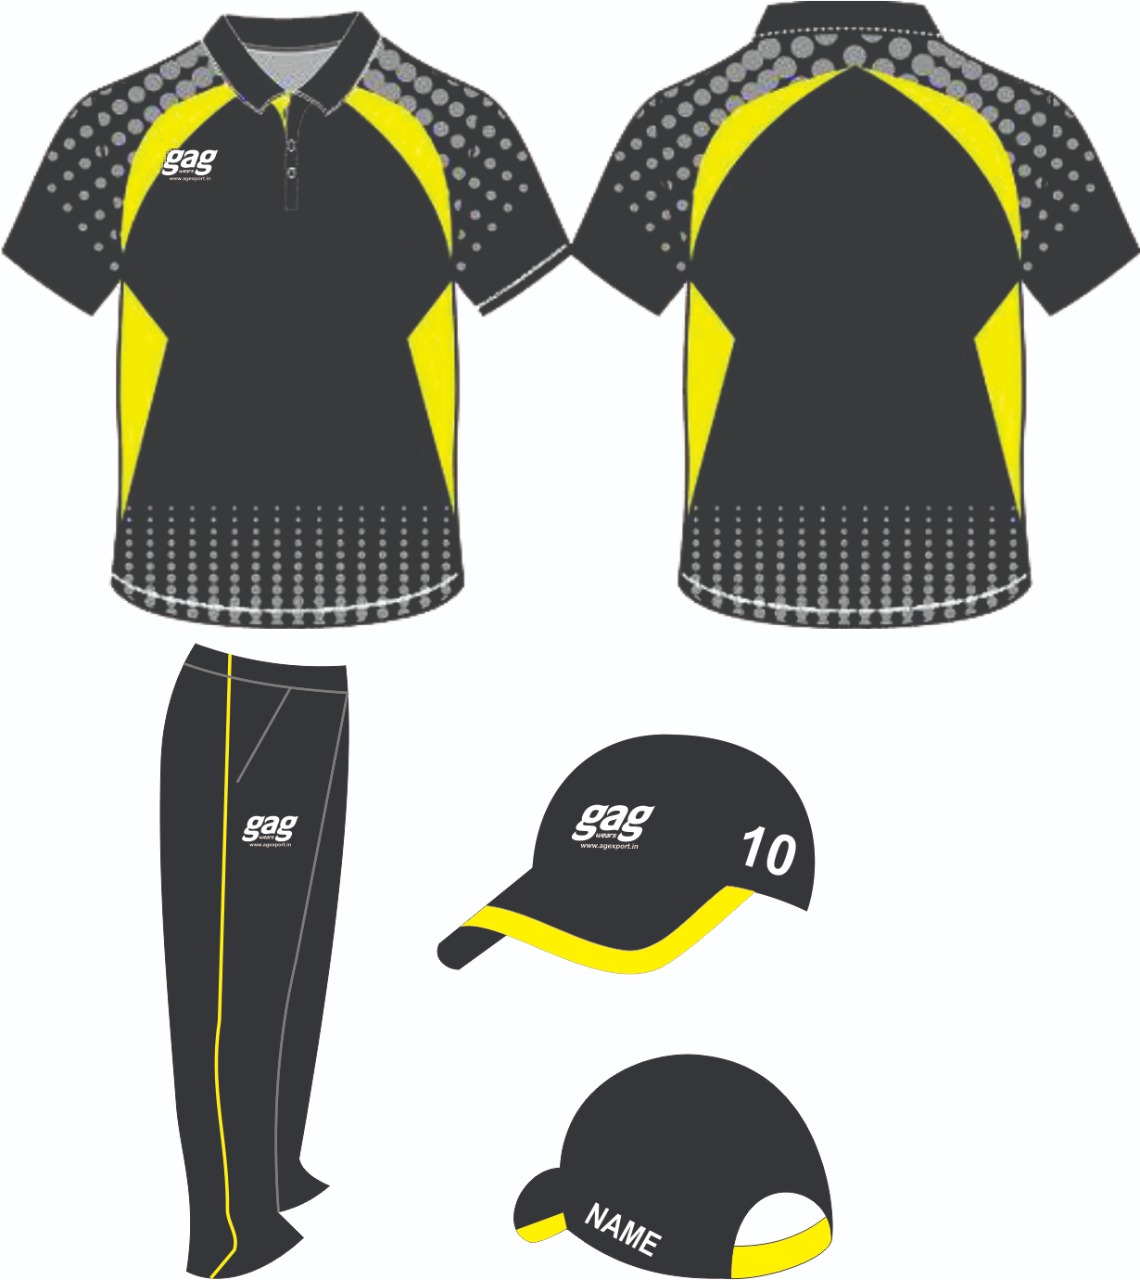 Cricket Uniform Manufacturers and Exporters in Nagpur